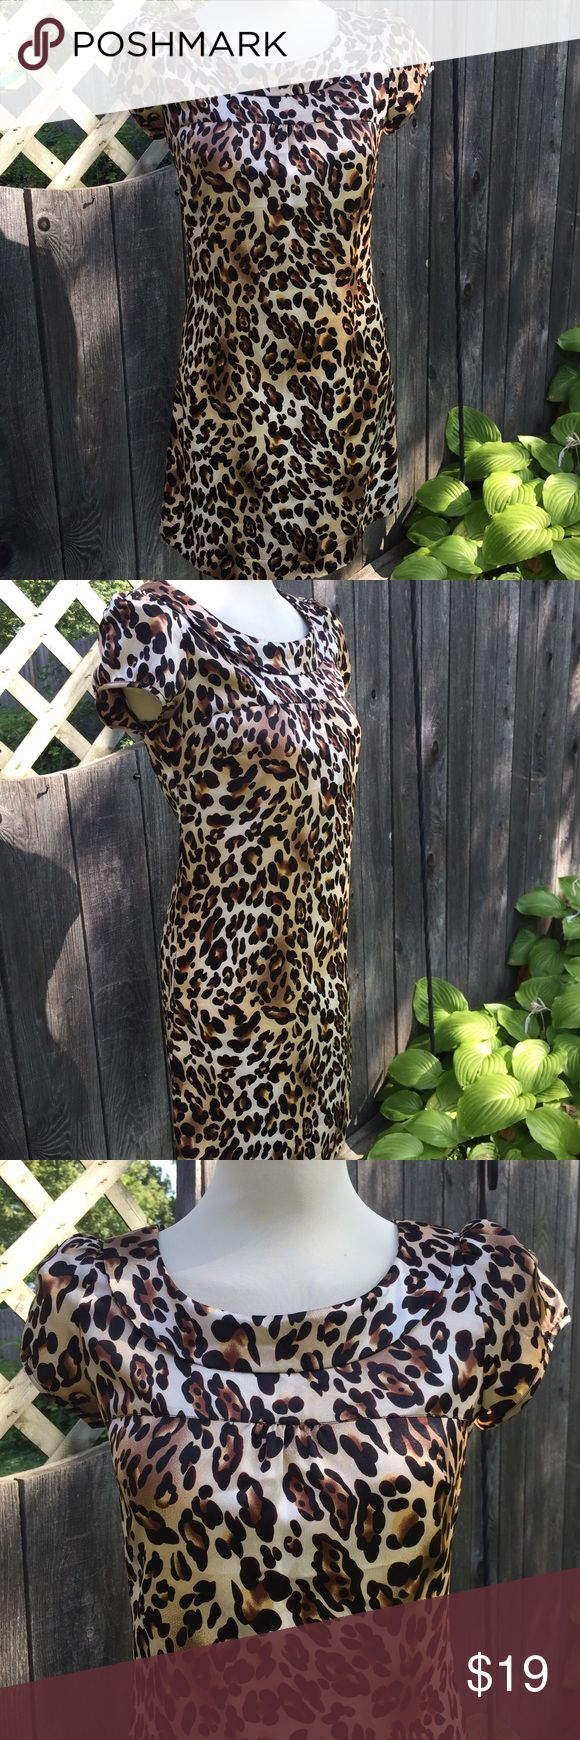 "Forever 21 Cheetah Print Dress Super cute Cheetah Print Dress with Peter Pan collar and satin....so vintage! 17""+ p2p. 33"" long Like brand new. Forever 21 Dresses Mini"